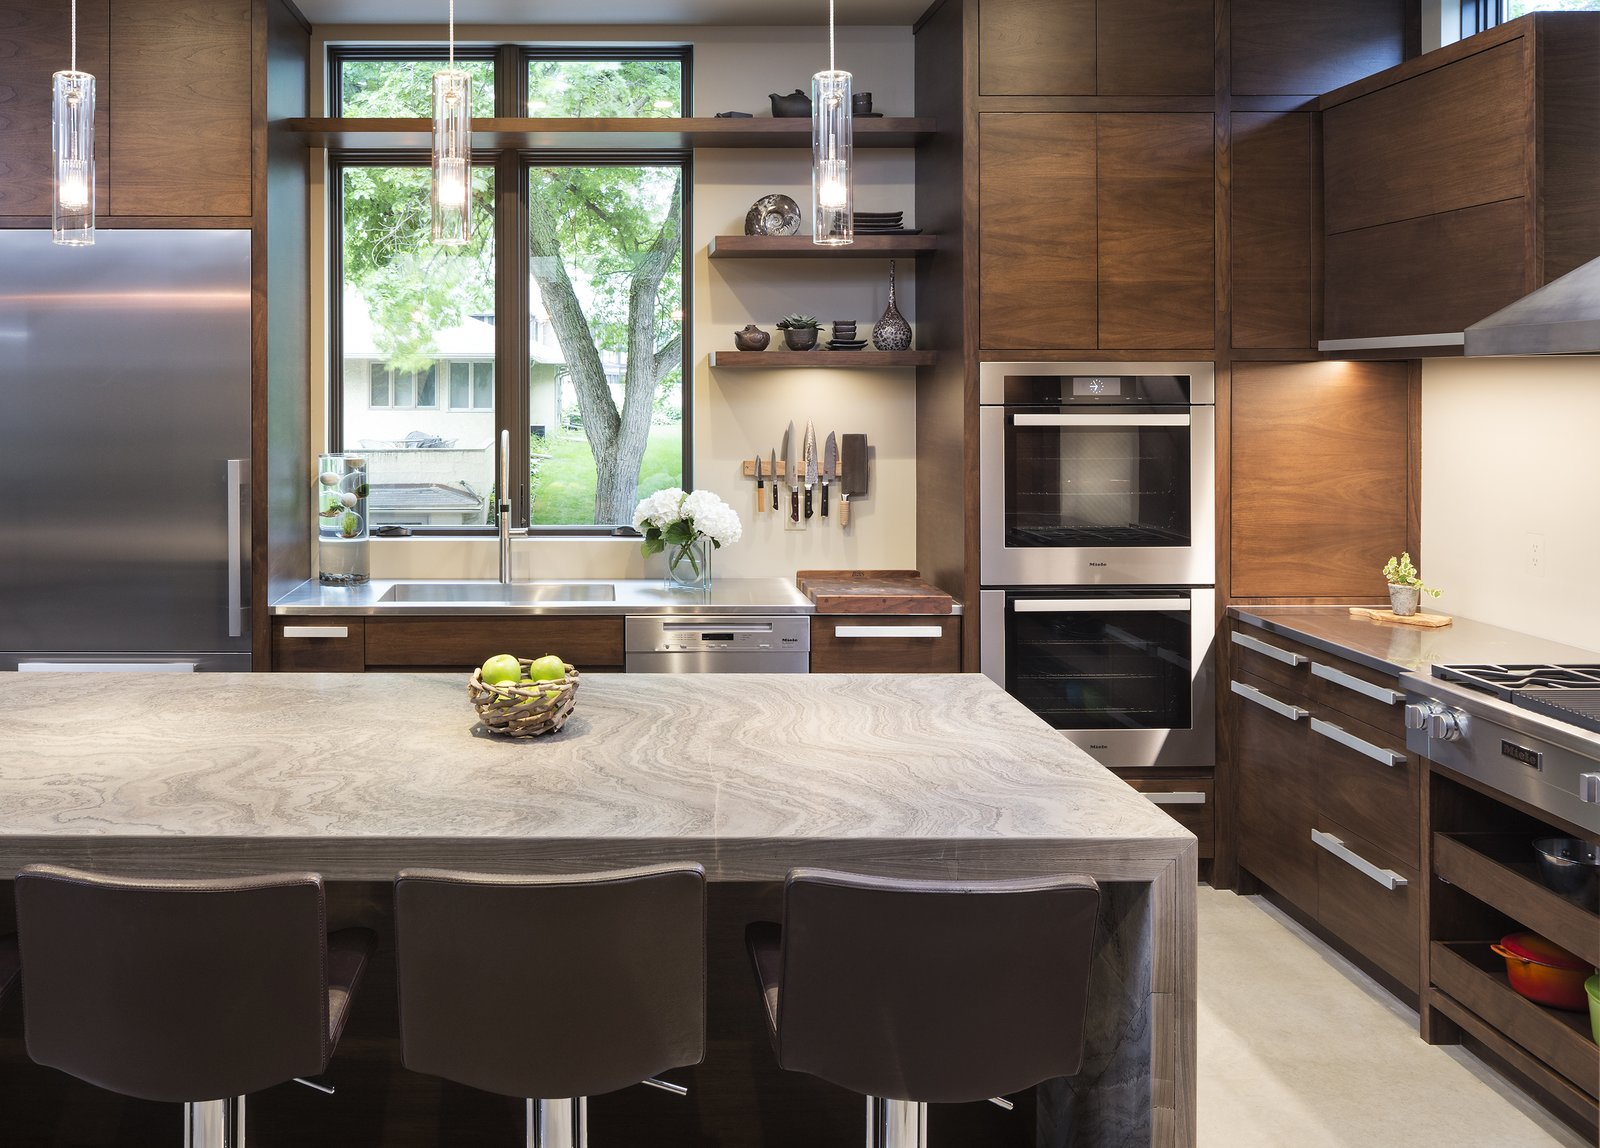 Kitchen, Wood Cabinet, Pendant Lighting, Refrigerator, Wall Oven, Range, Range Hood, and Dishwasher Builder John Kraemer & Sons' Lake Calhoun Organic Modern residence, winner of 2016 Integrity Red Diamond Achiever Award  Lake Calhoun Organic Modern